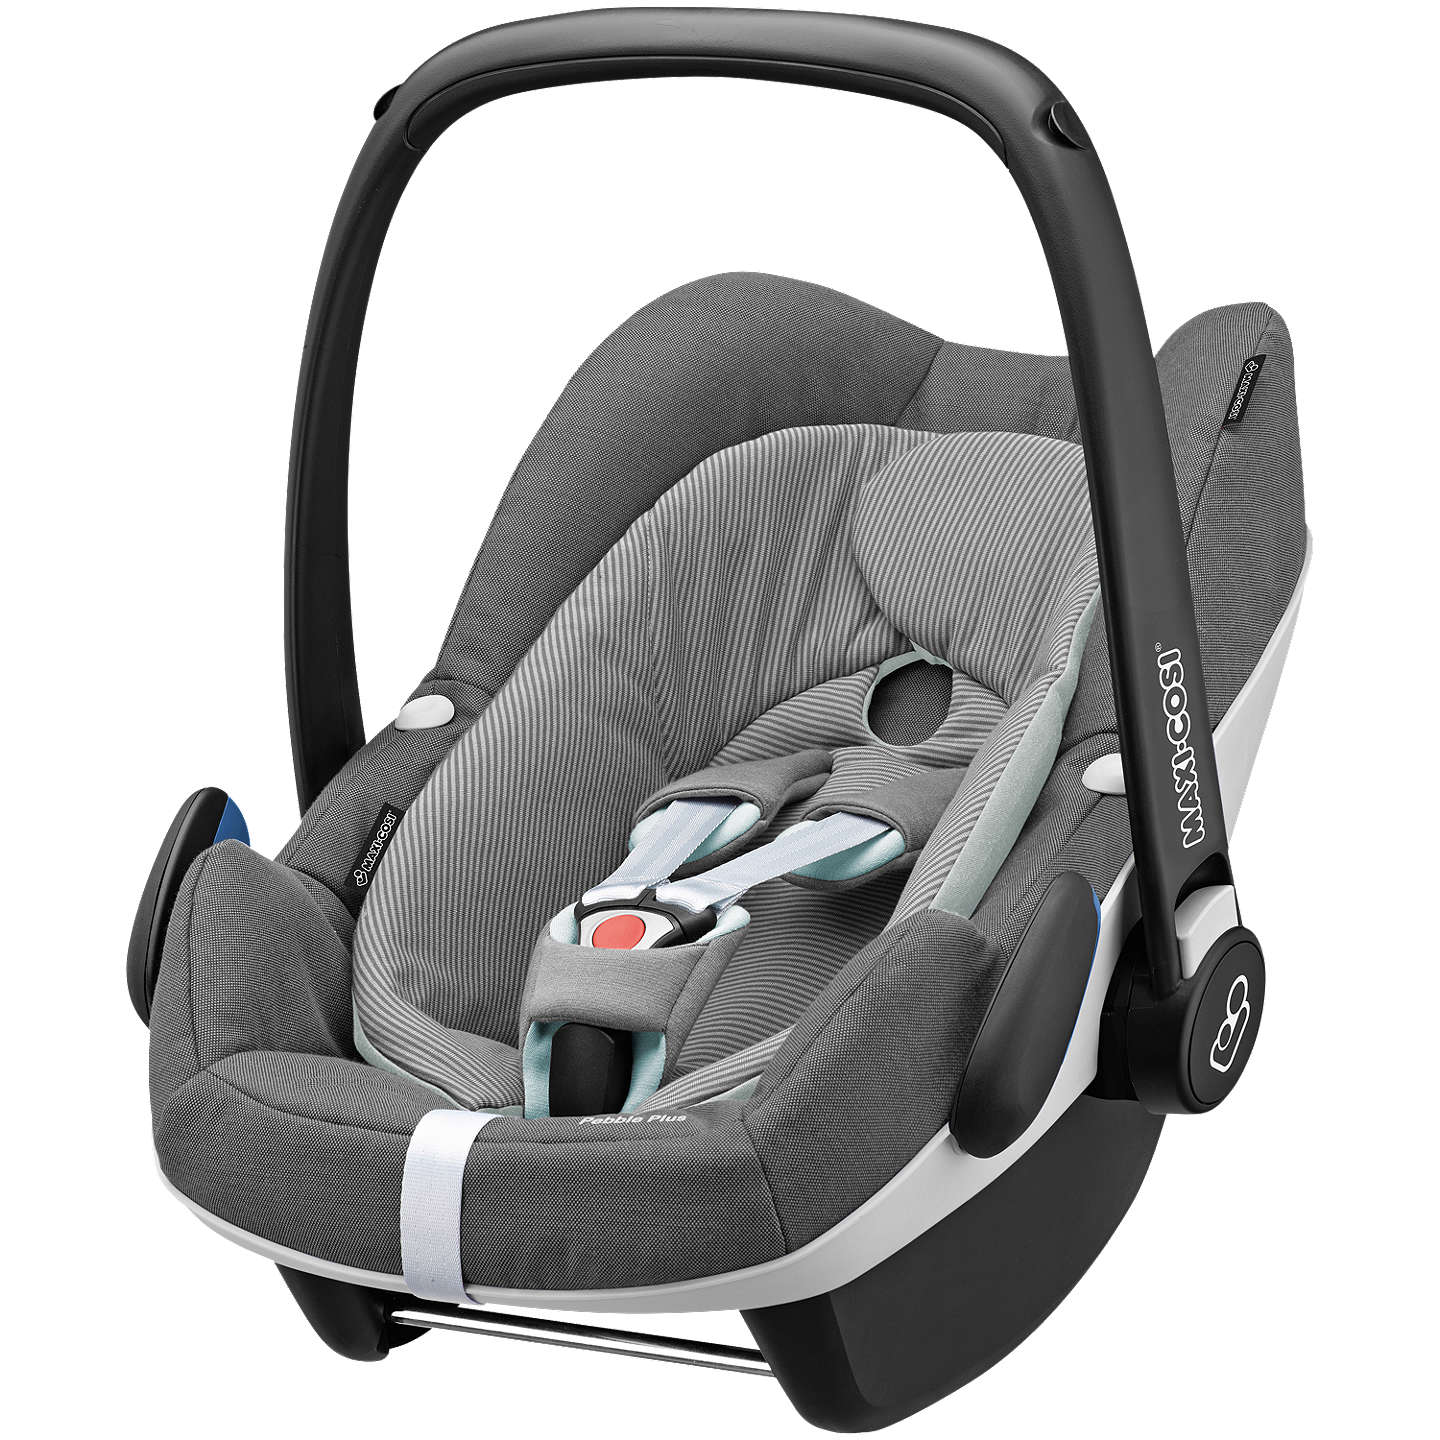 maxi cosi pebble plus i size group 0 baby car seat concrete grey at john lewis. Black Bedroom Furniture Sets. Home Design Ideas